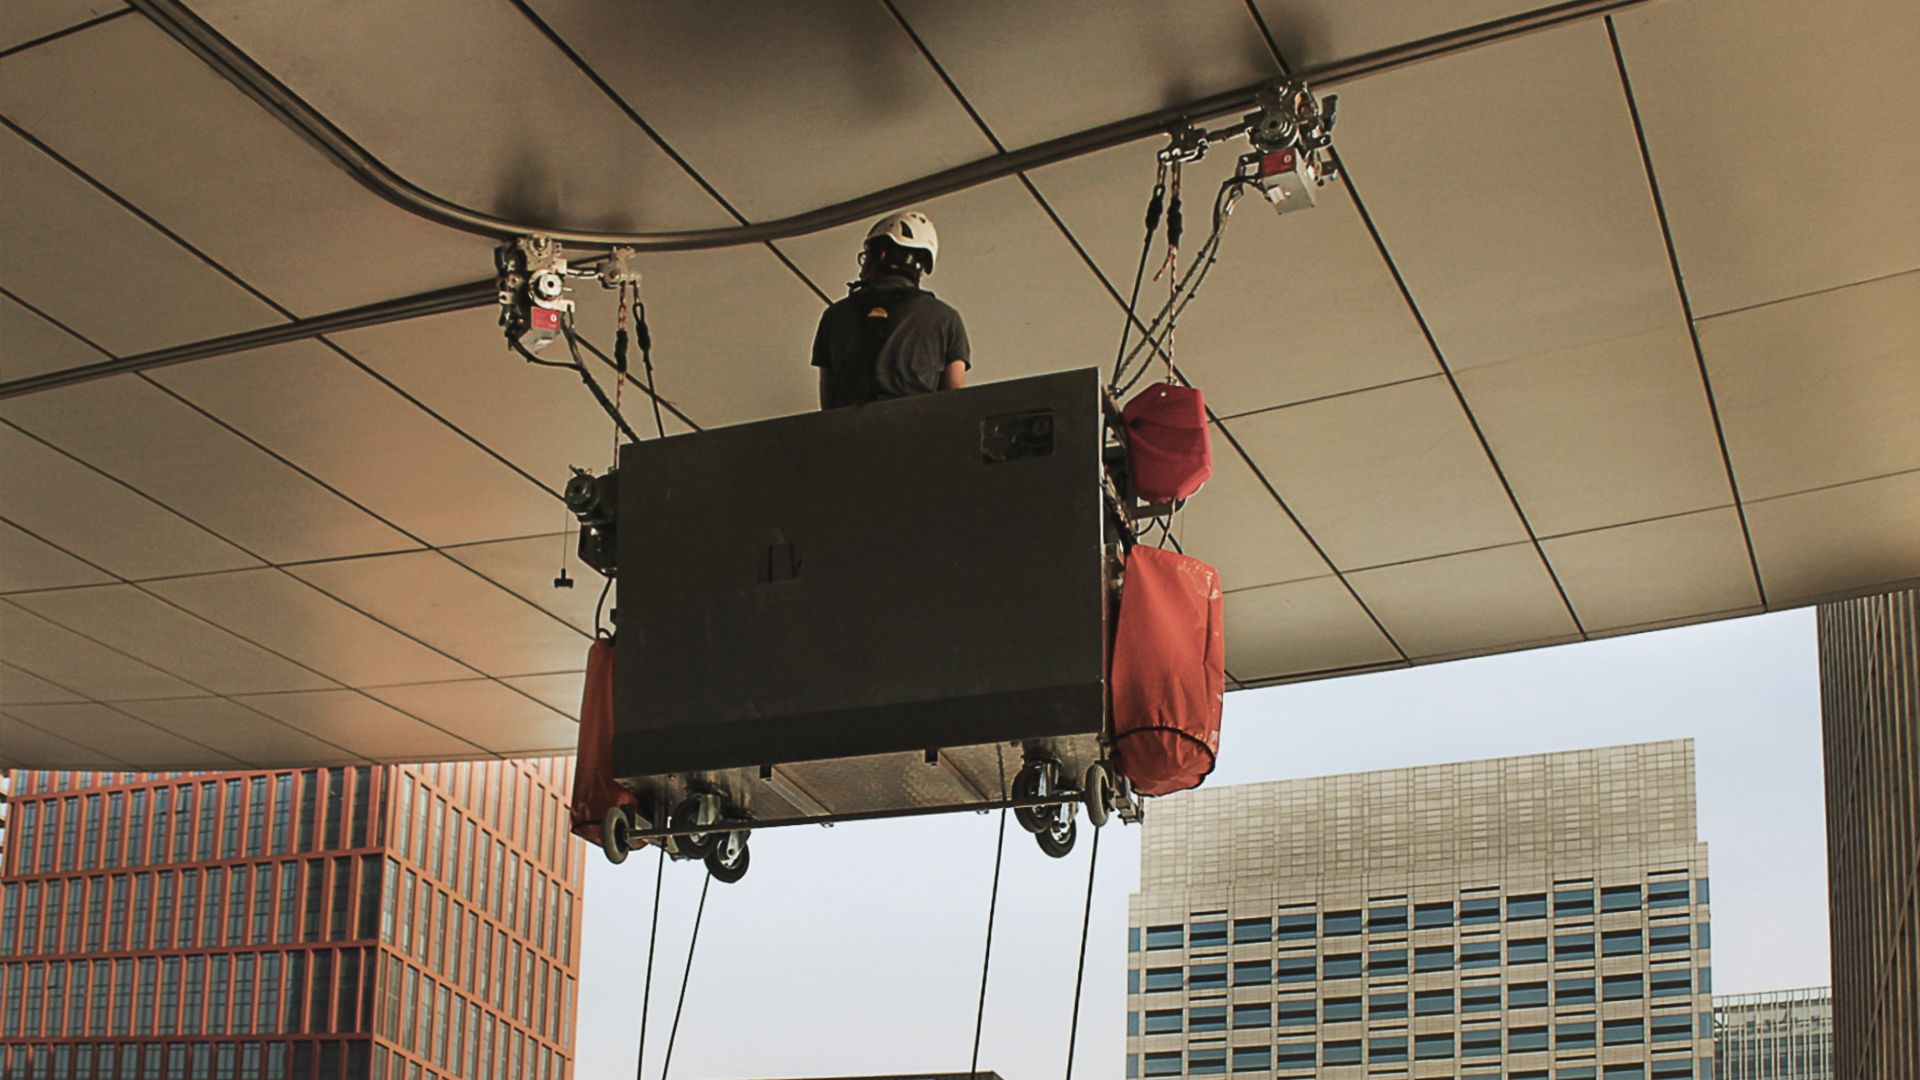 RopeClimber cradle at the Tianjin International Convention Center Hotel